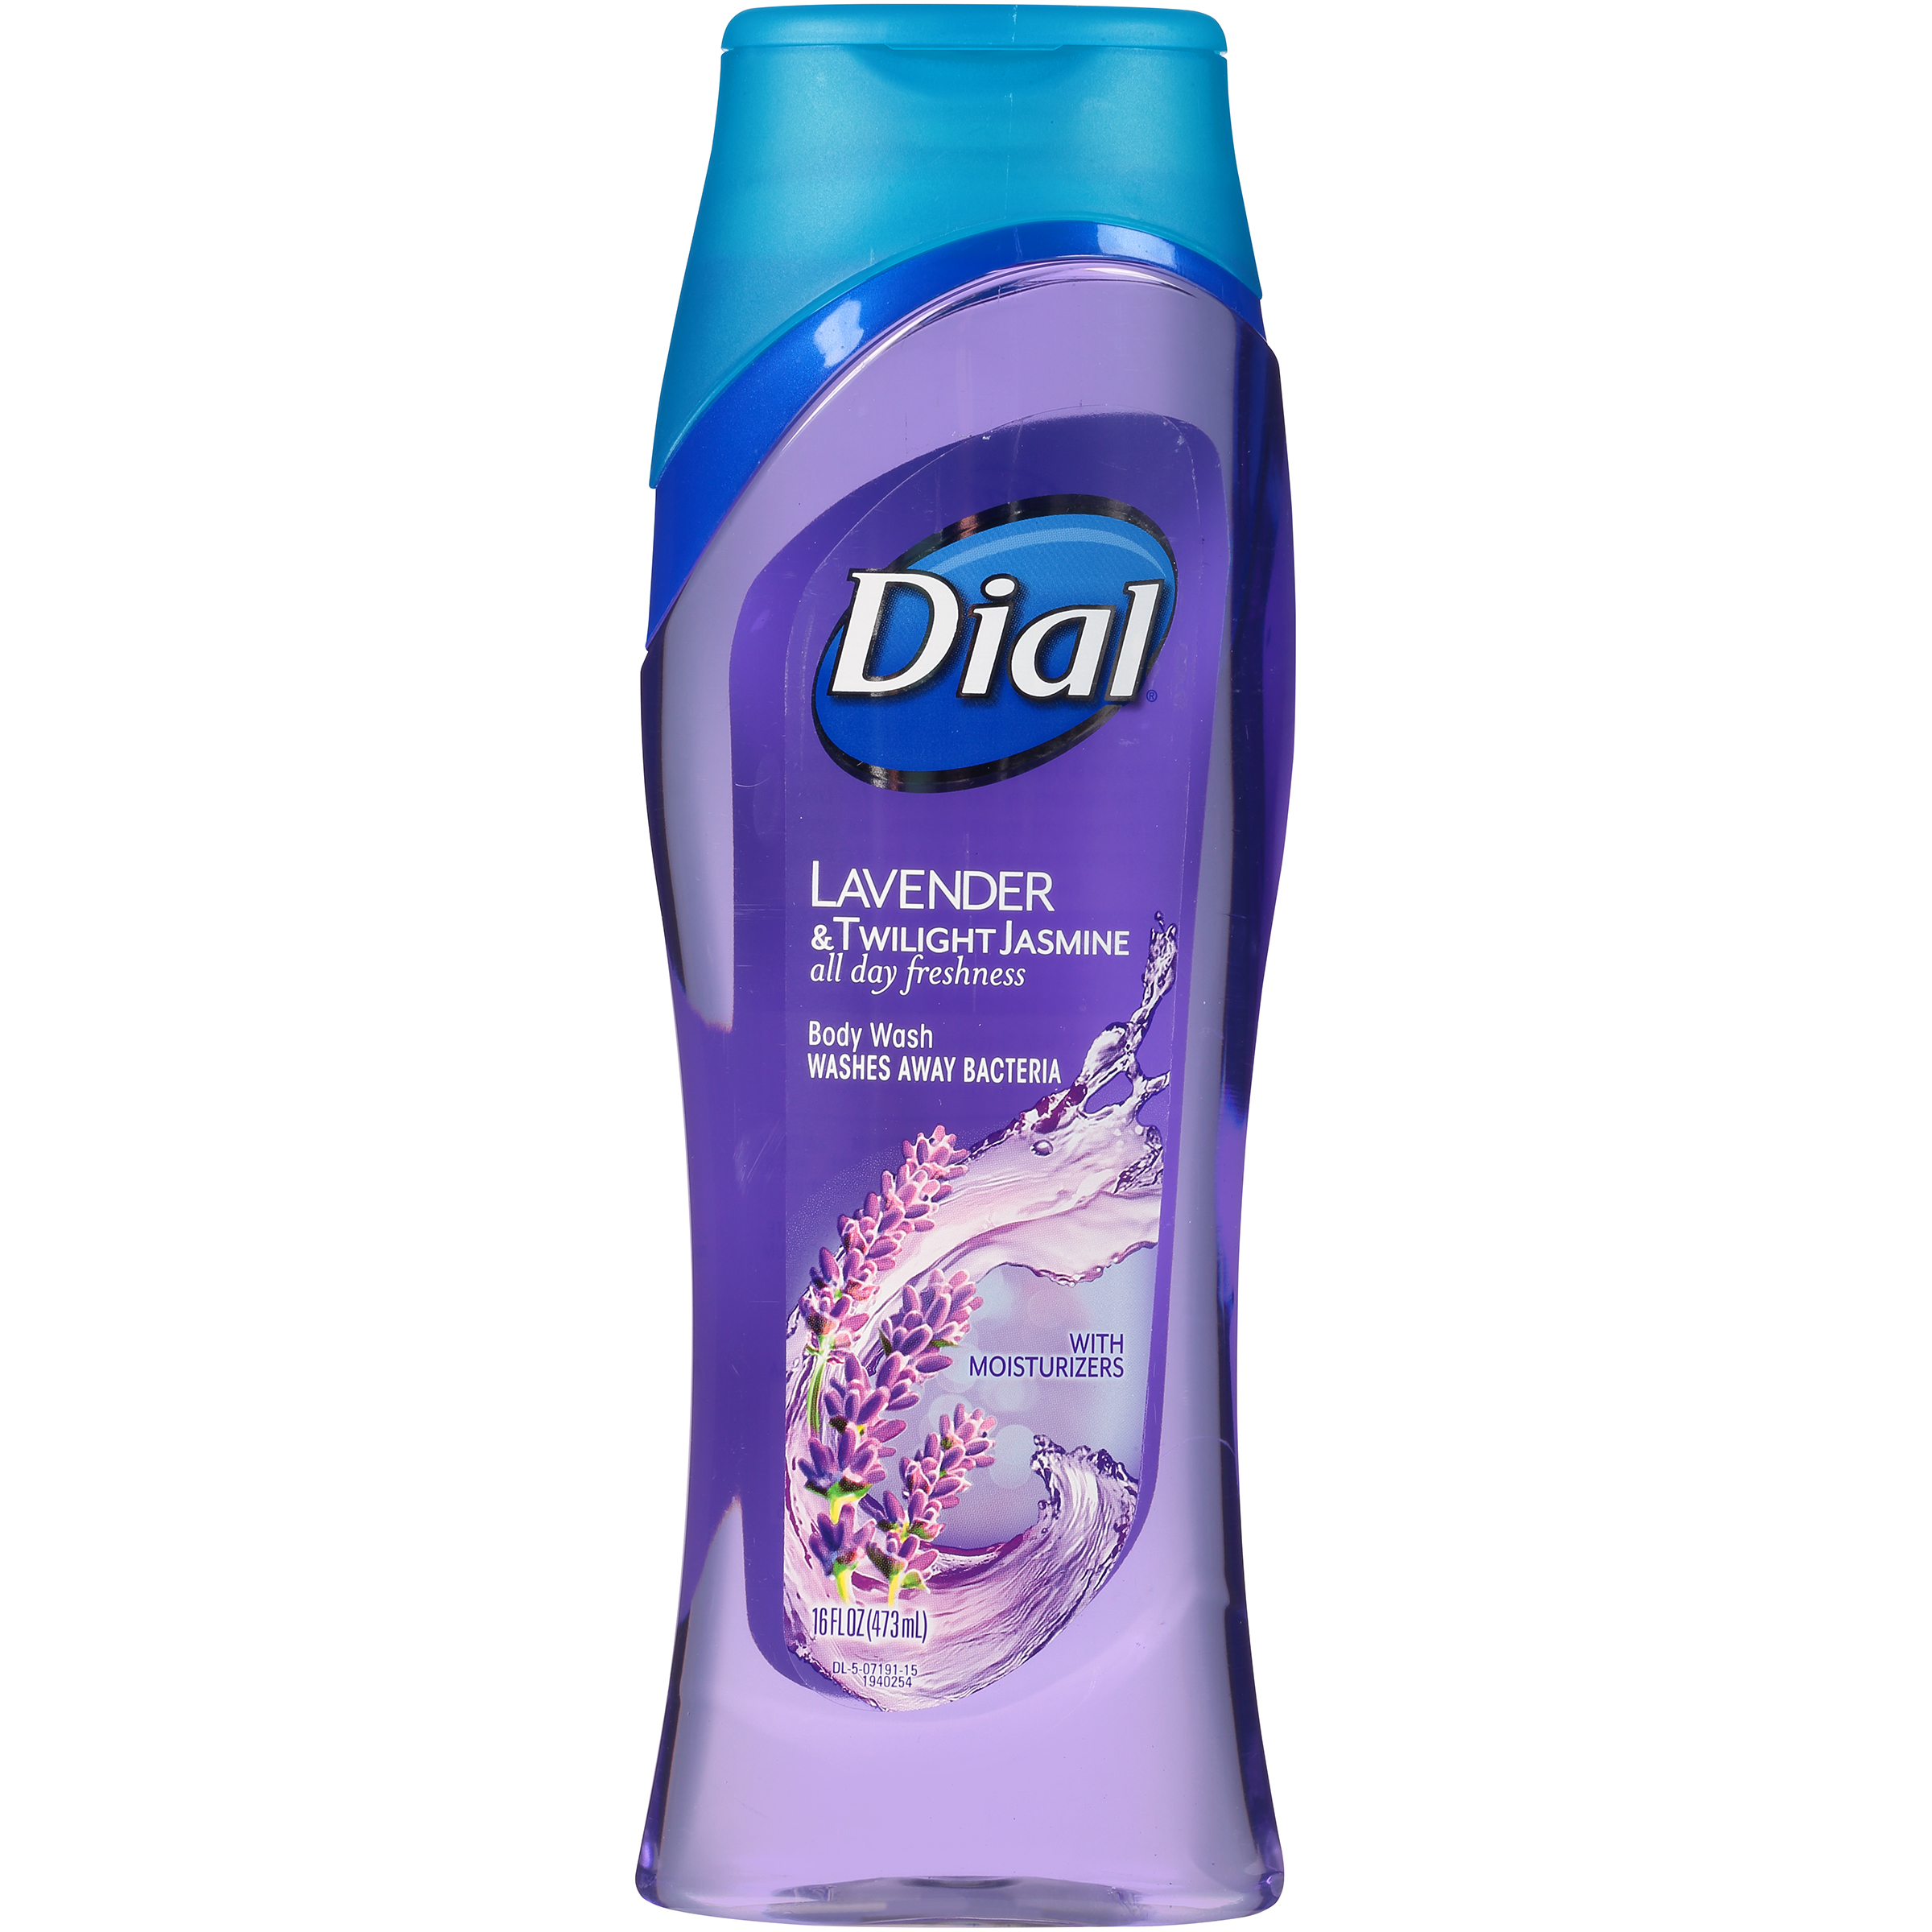 Dial Body Wash, Lavender & Twilight Jasmine, 16 Ounce